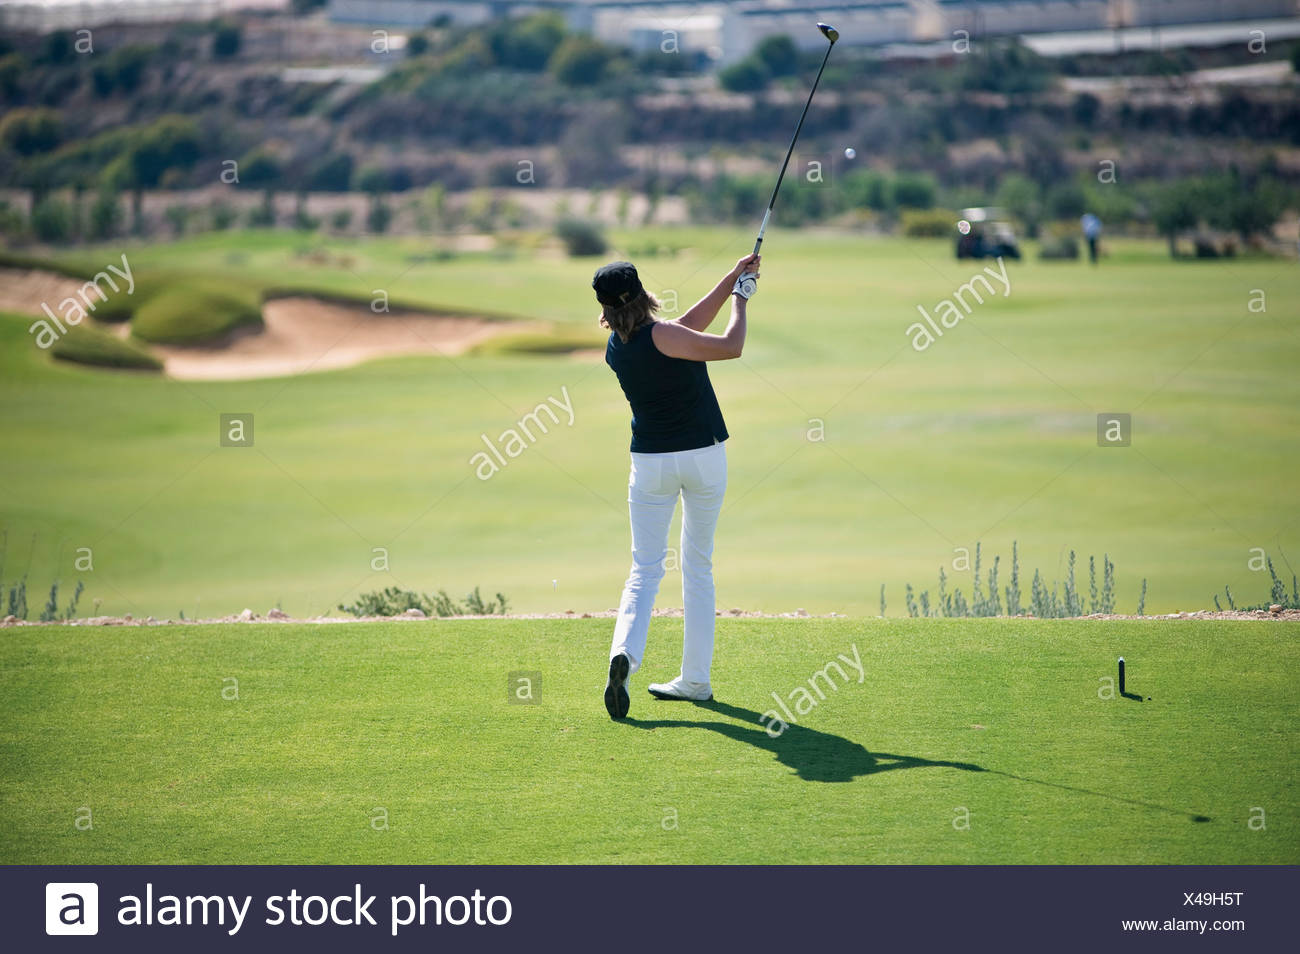 Cyprus, Woman playing golf on golf course - Stock Image